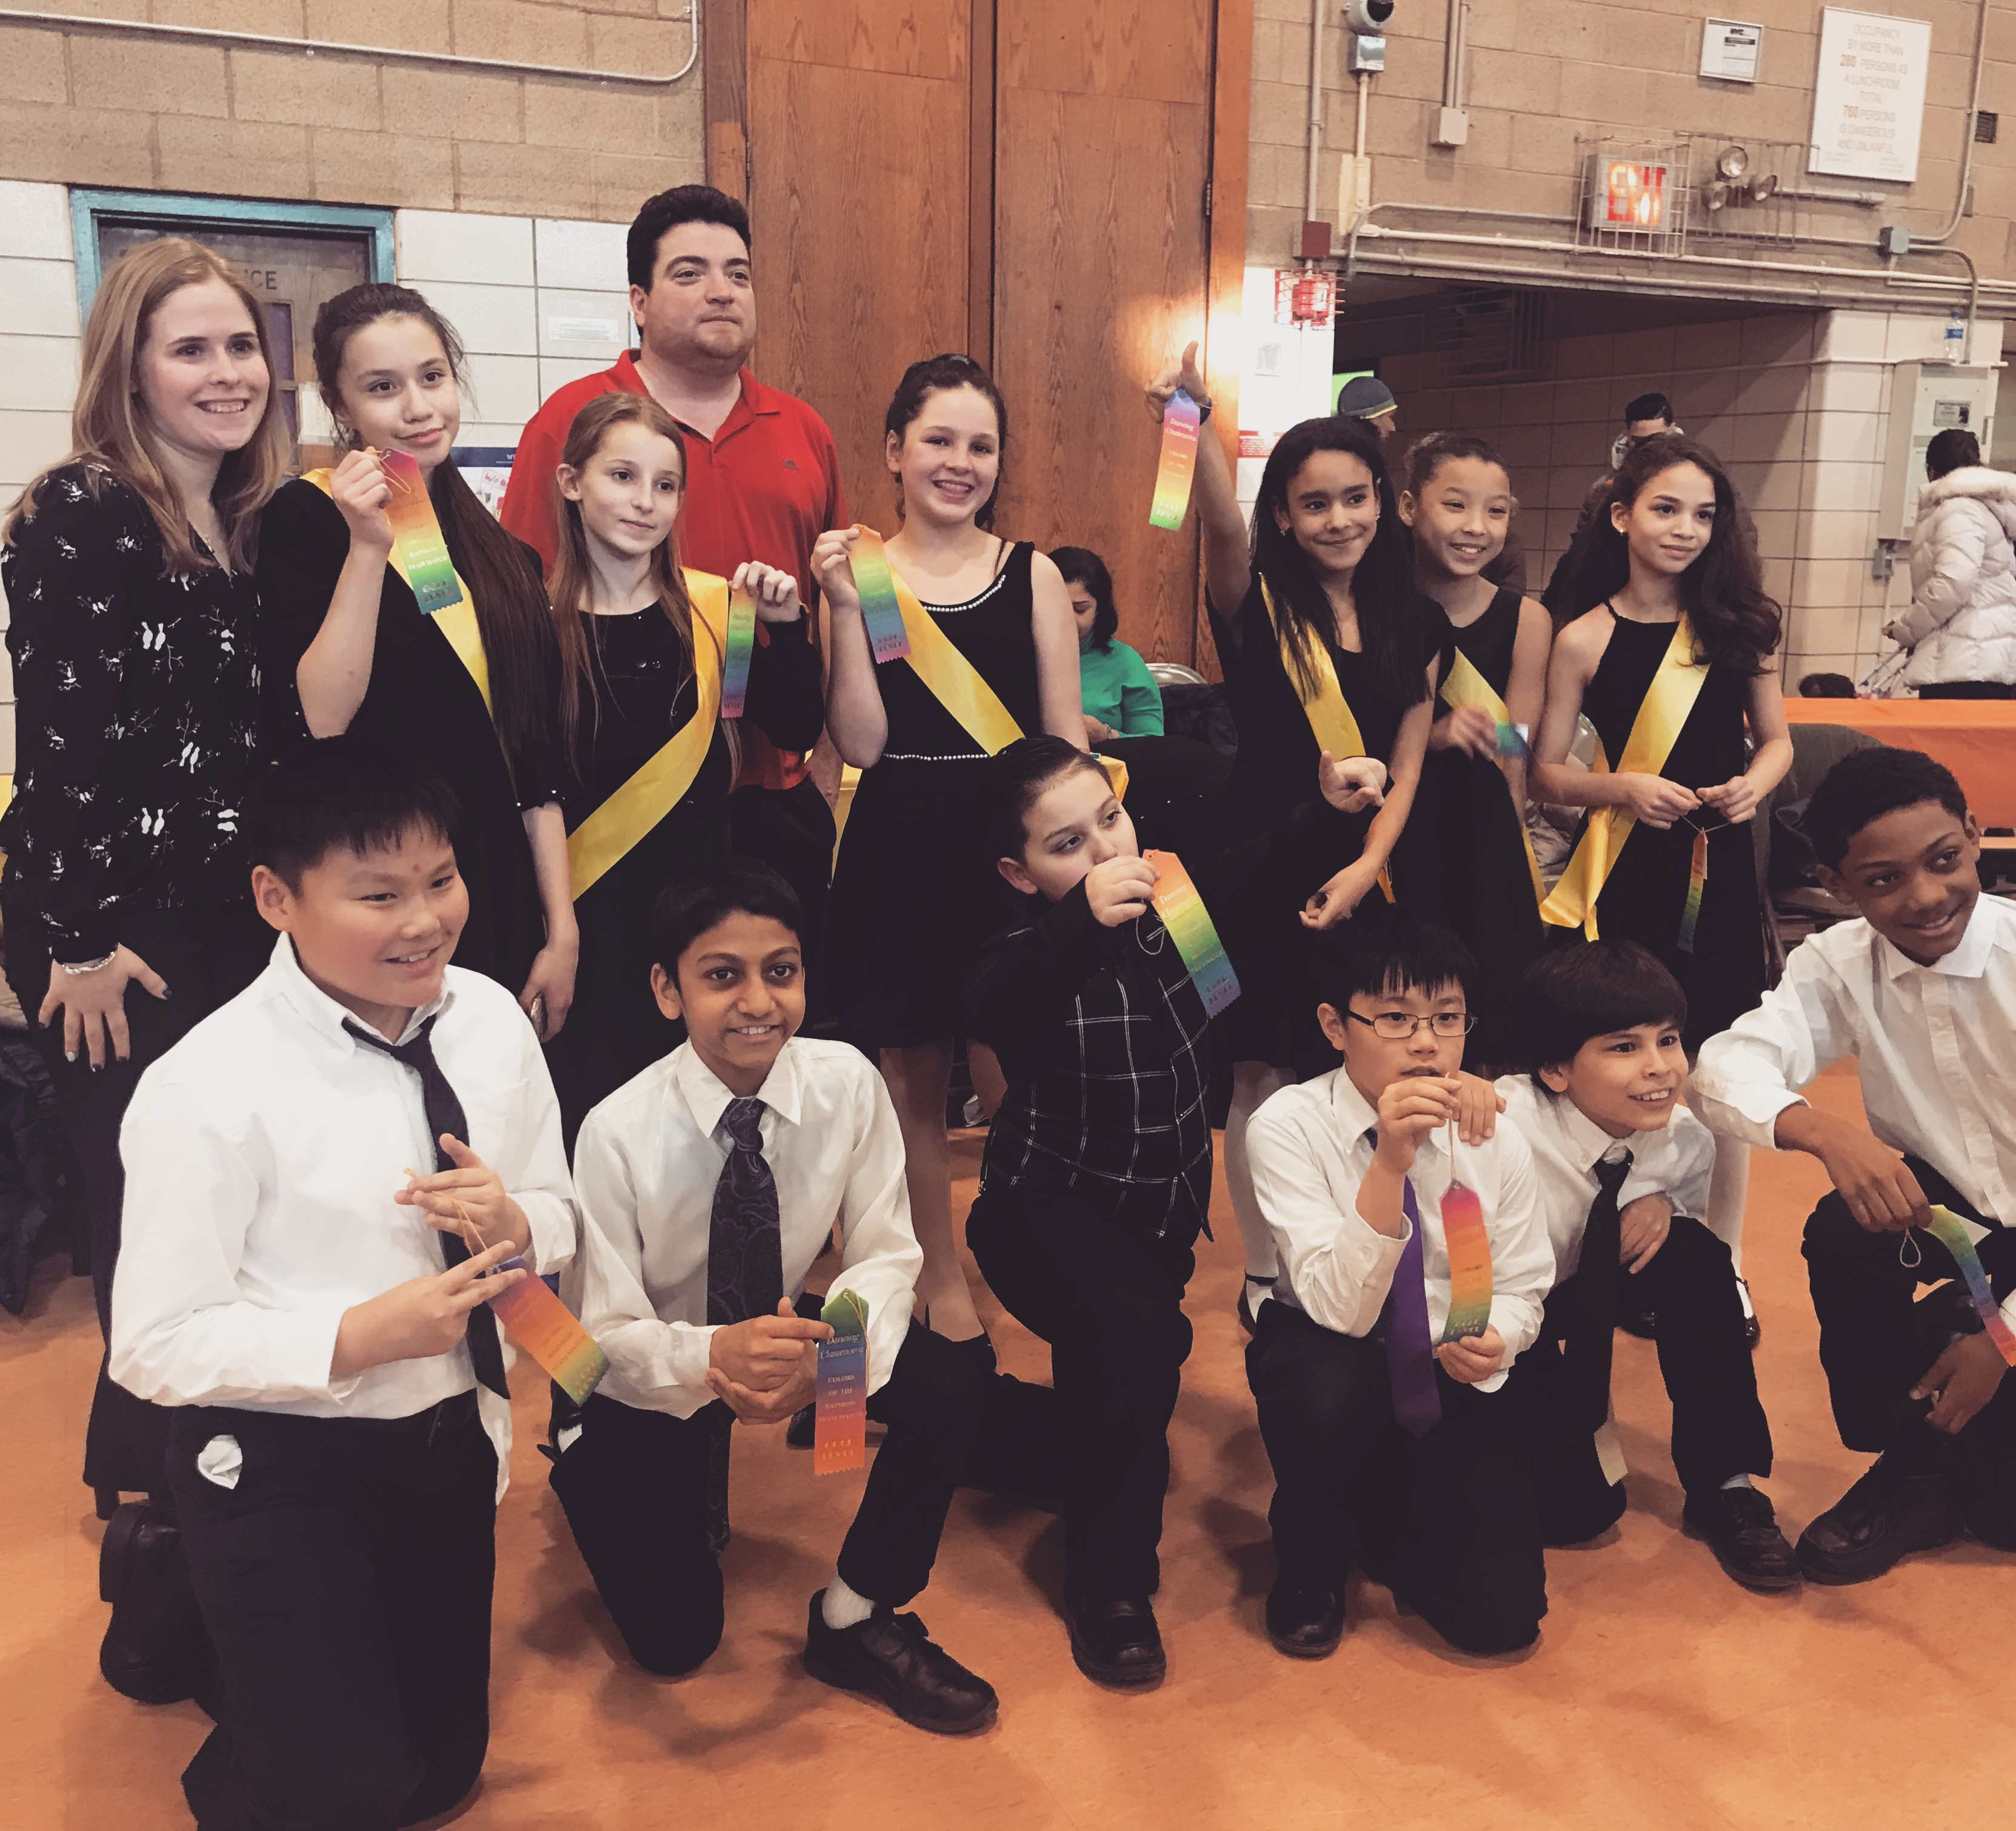 Ballroom Dancing at Our Lady of Mercy - Diocese of Brooklyn